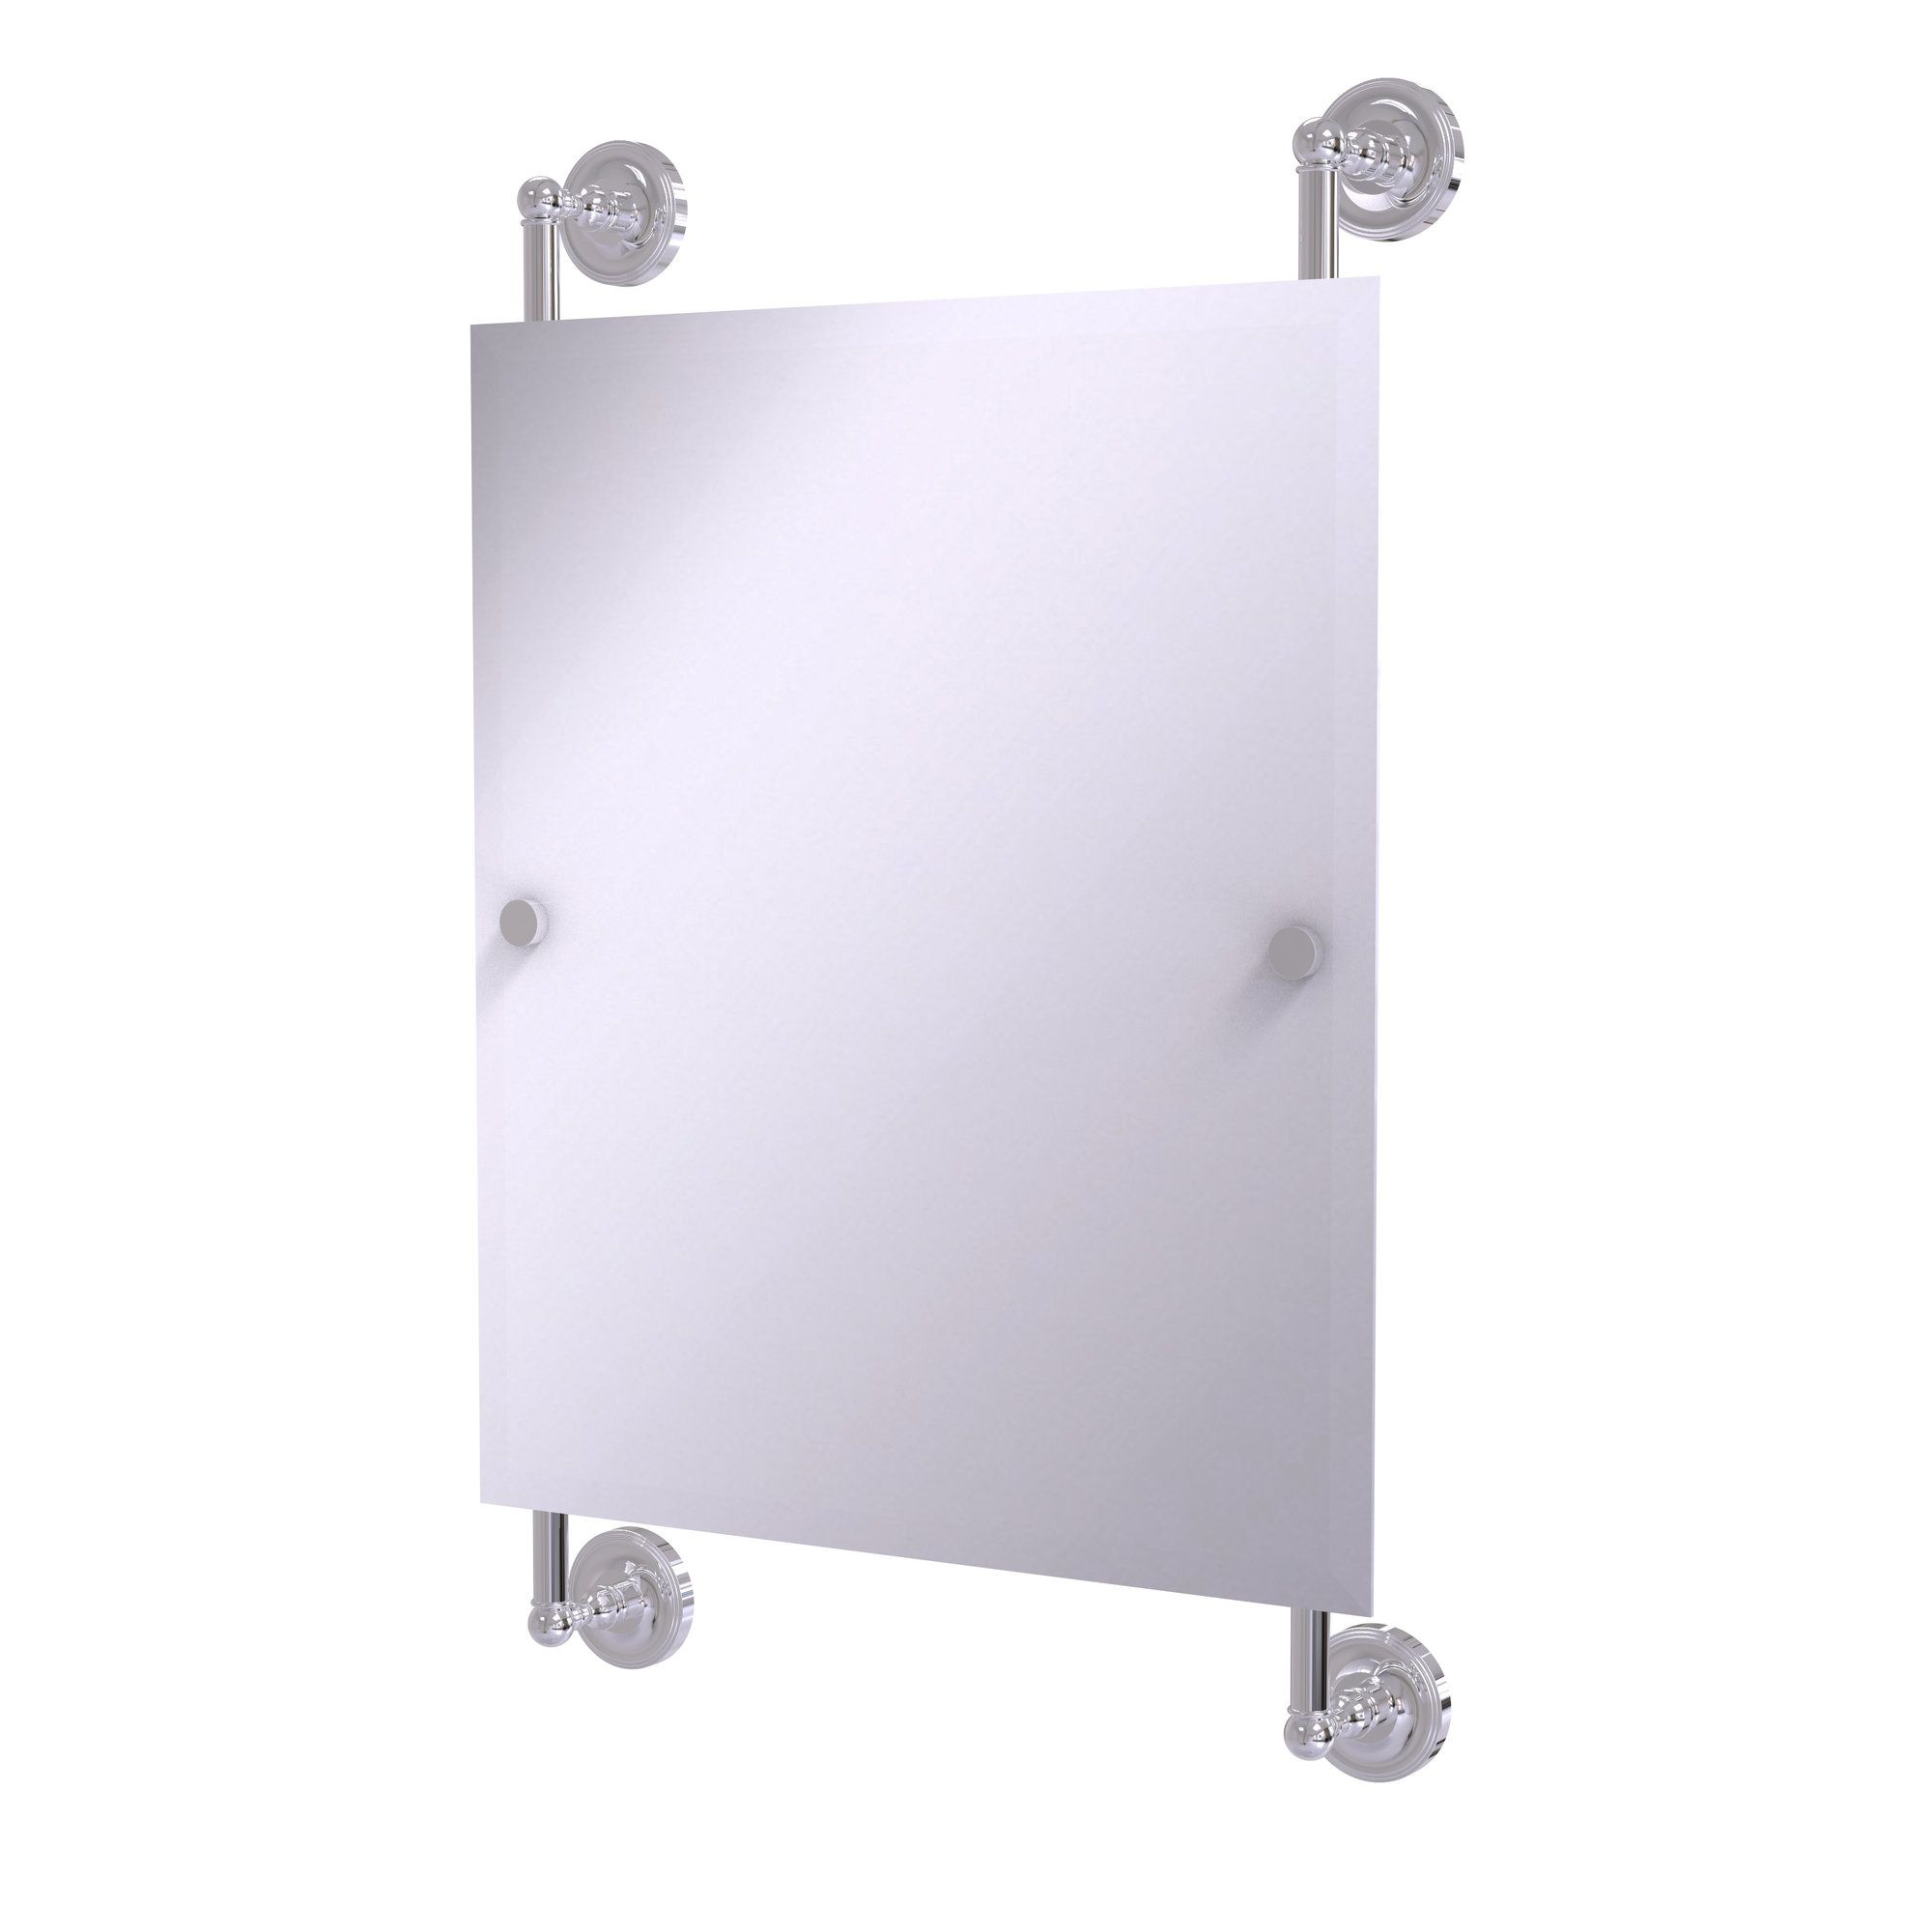 Prestige regal landscape wall mirror landscape walls and products prestige regal landscape wall mirror amipublicfo Gallery